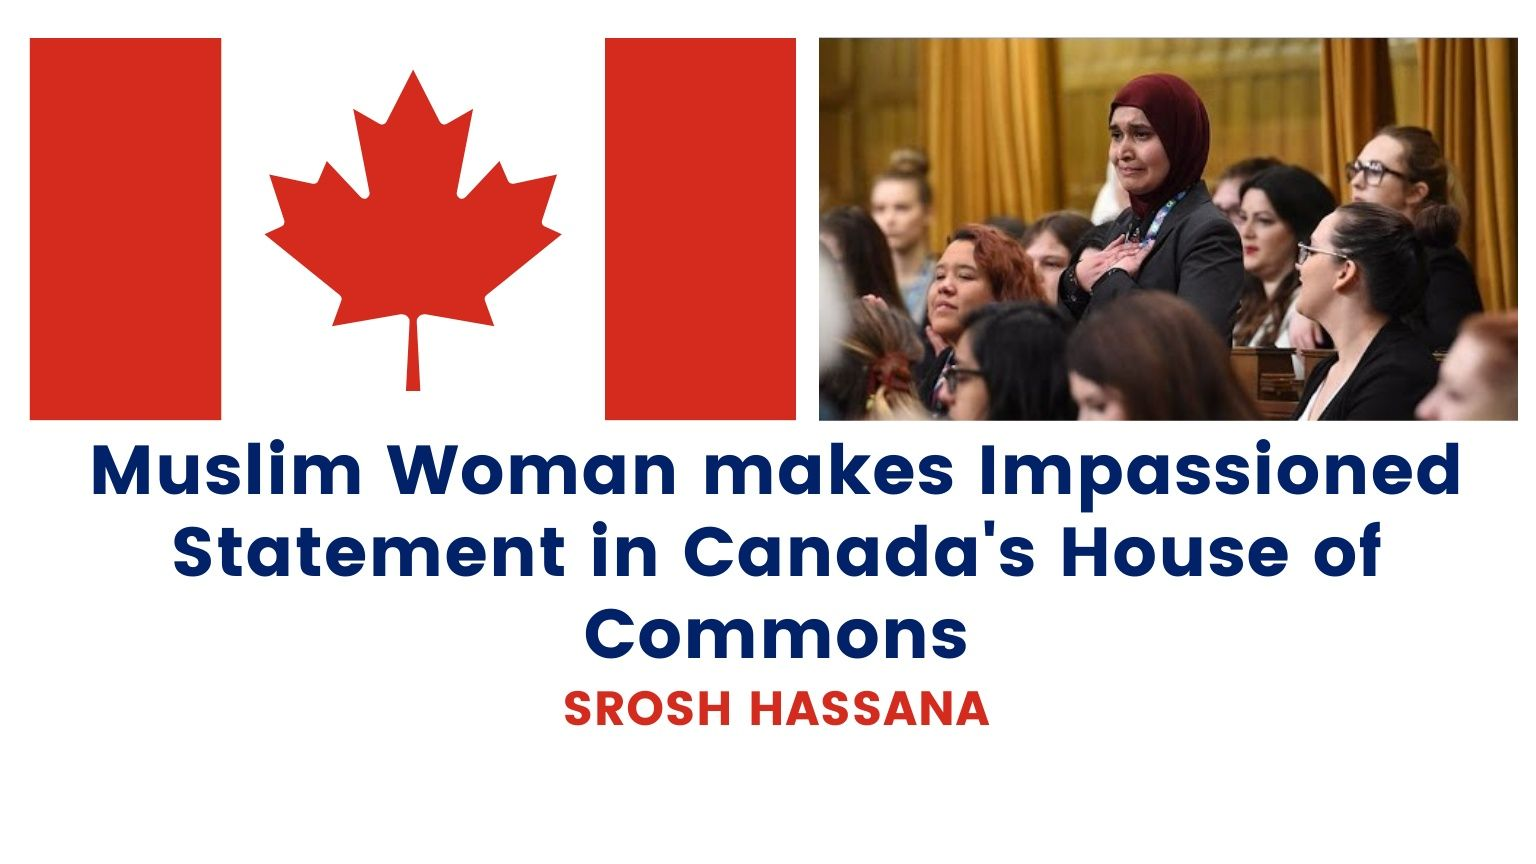 Srosh Hassana | Muslim Woman makes Impassioned Statement in Canada's House of Commons